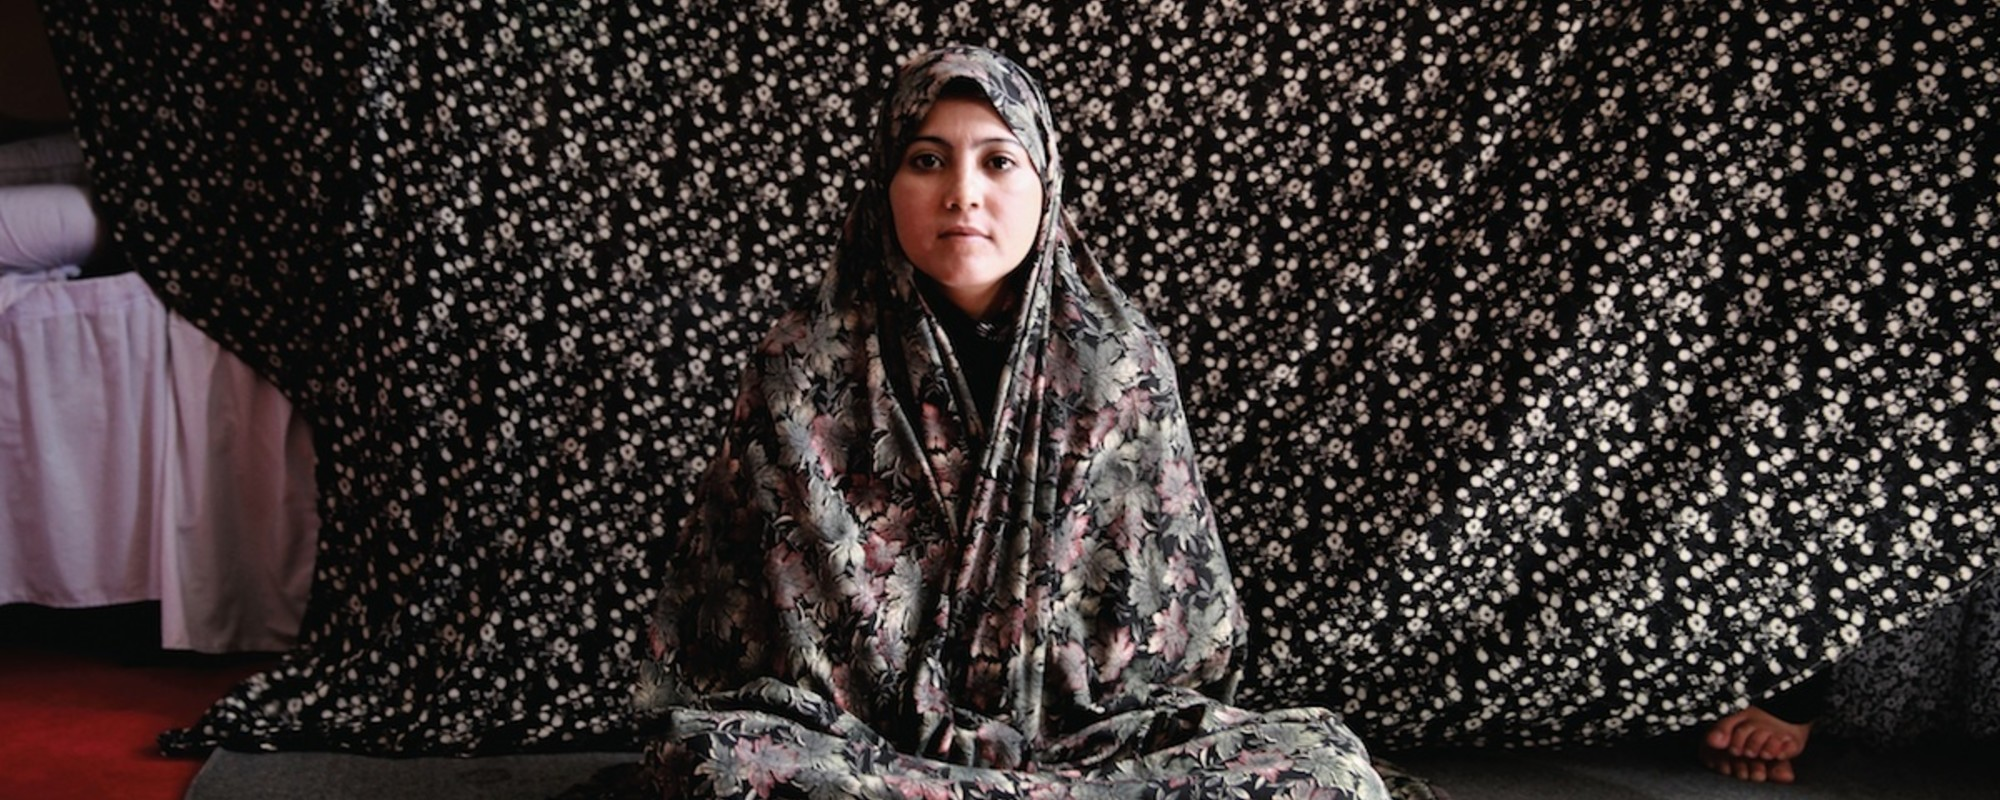 Portraits of Afghani Women Imprisoned for 'Moral Crimes'